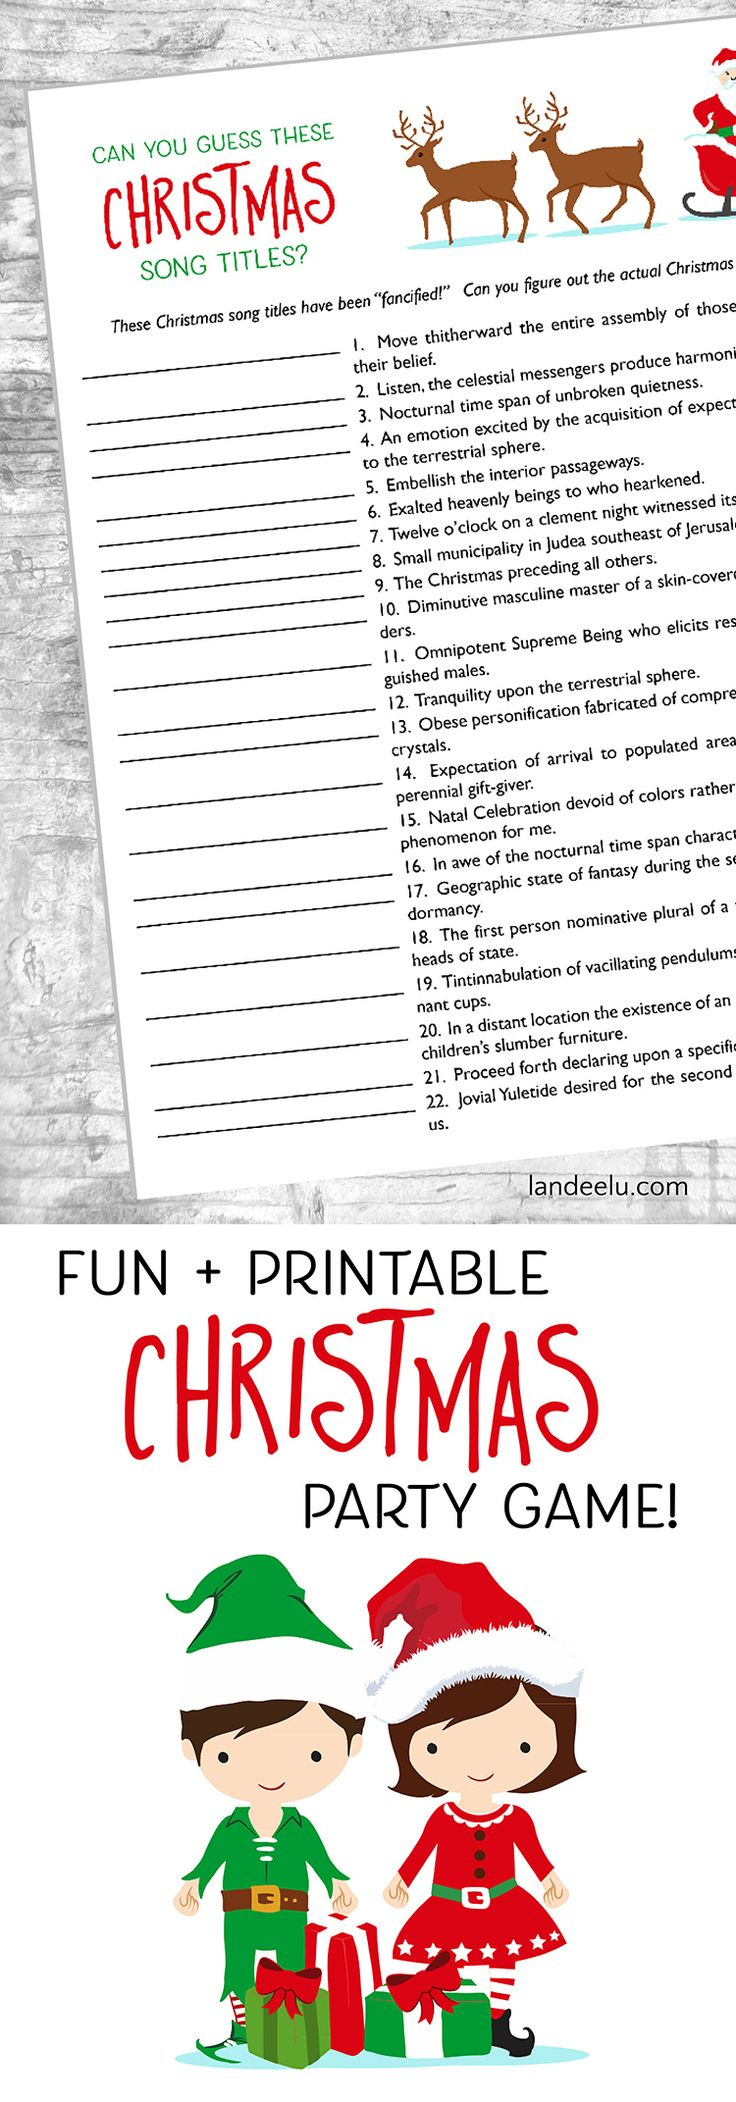 Looking for fun Christmas games to play this holiday season? Download and print this awesome Christmas Song Titles game that everyone will love!